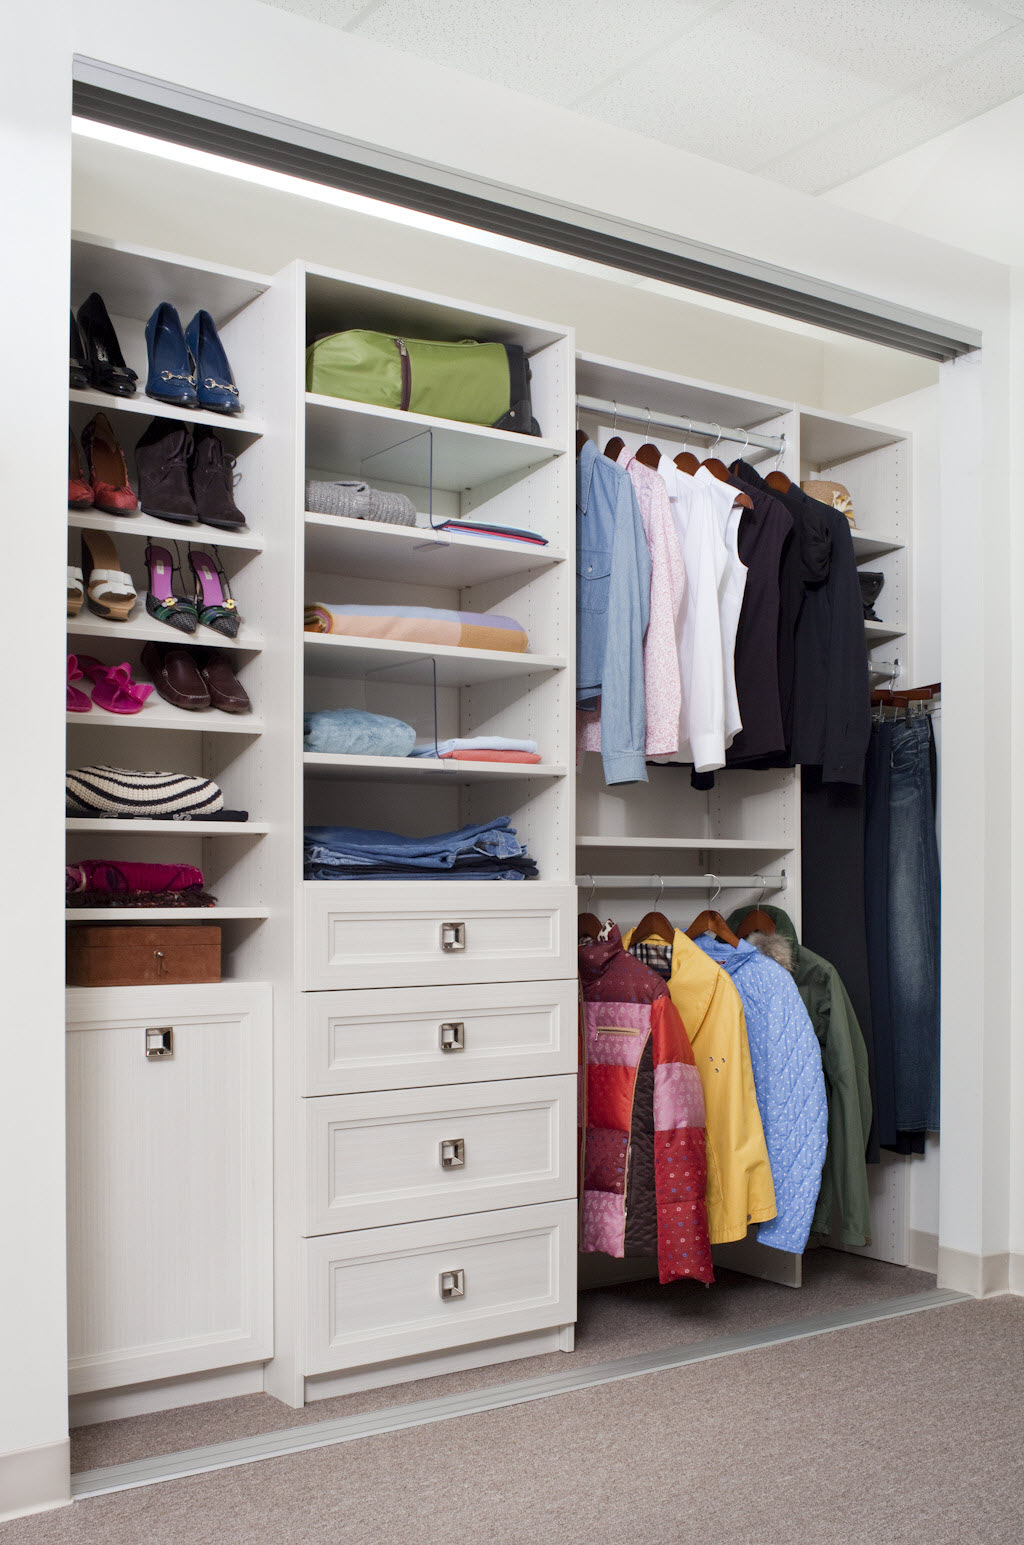 Reach In Closet Organization Ideas Part - 50: Organization Closet